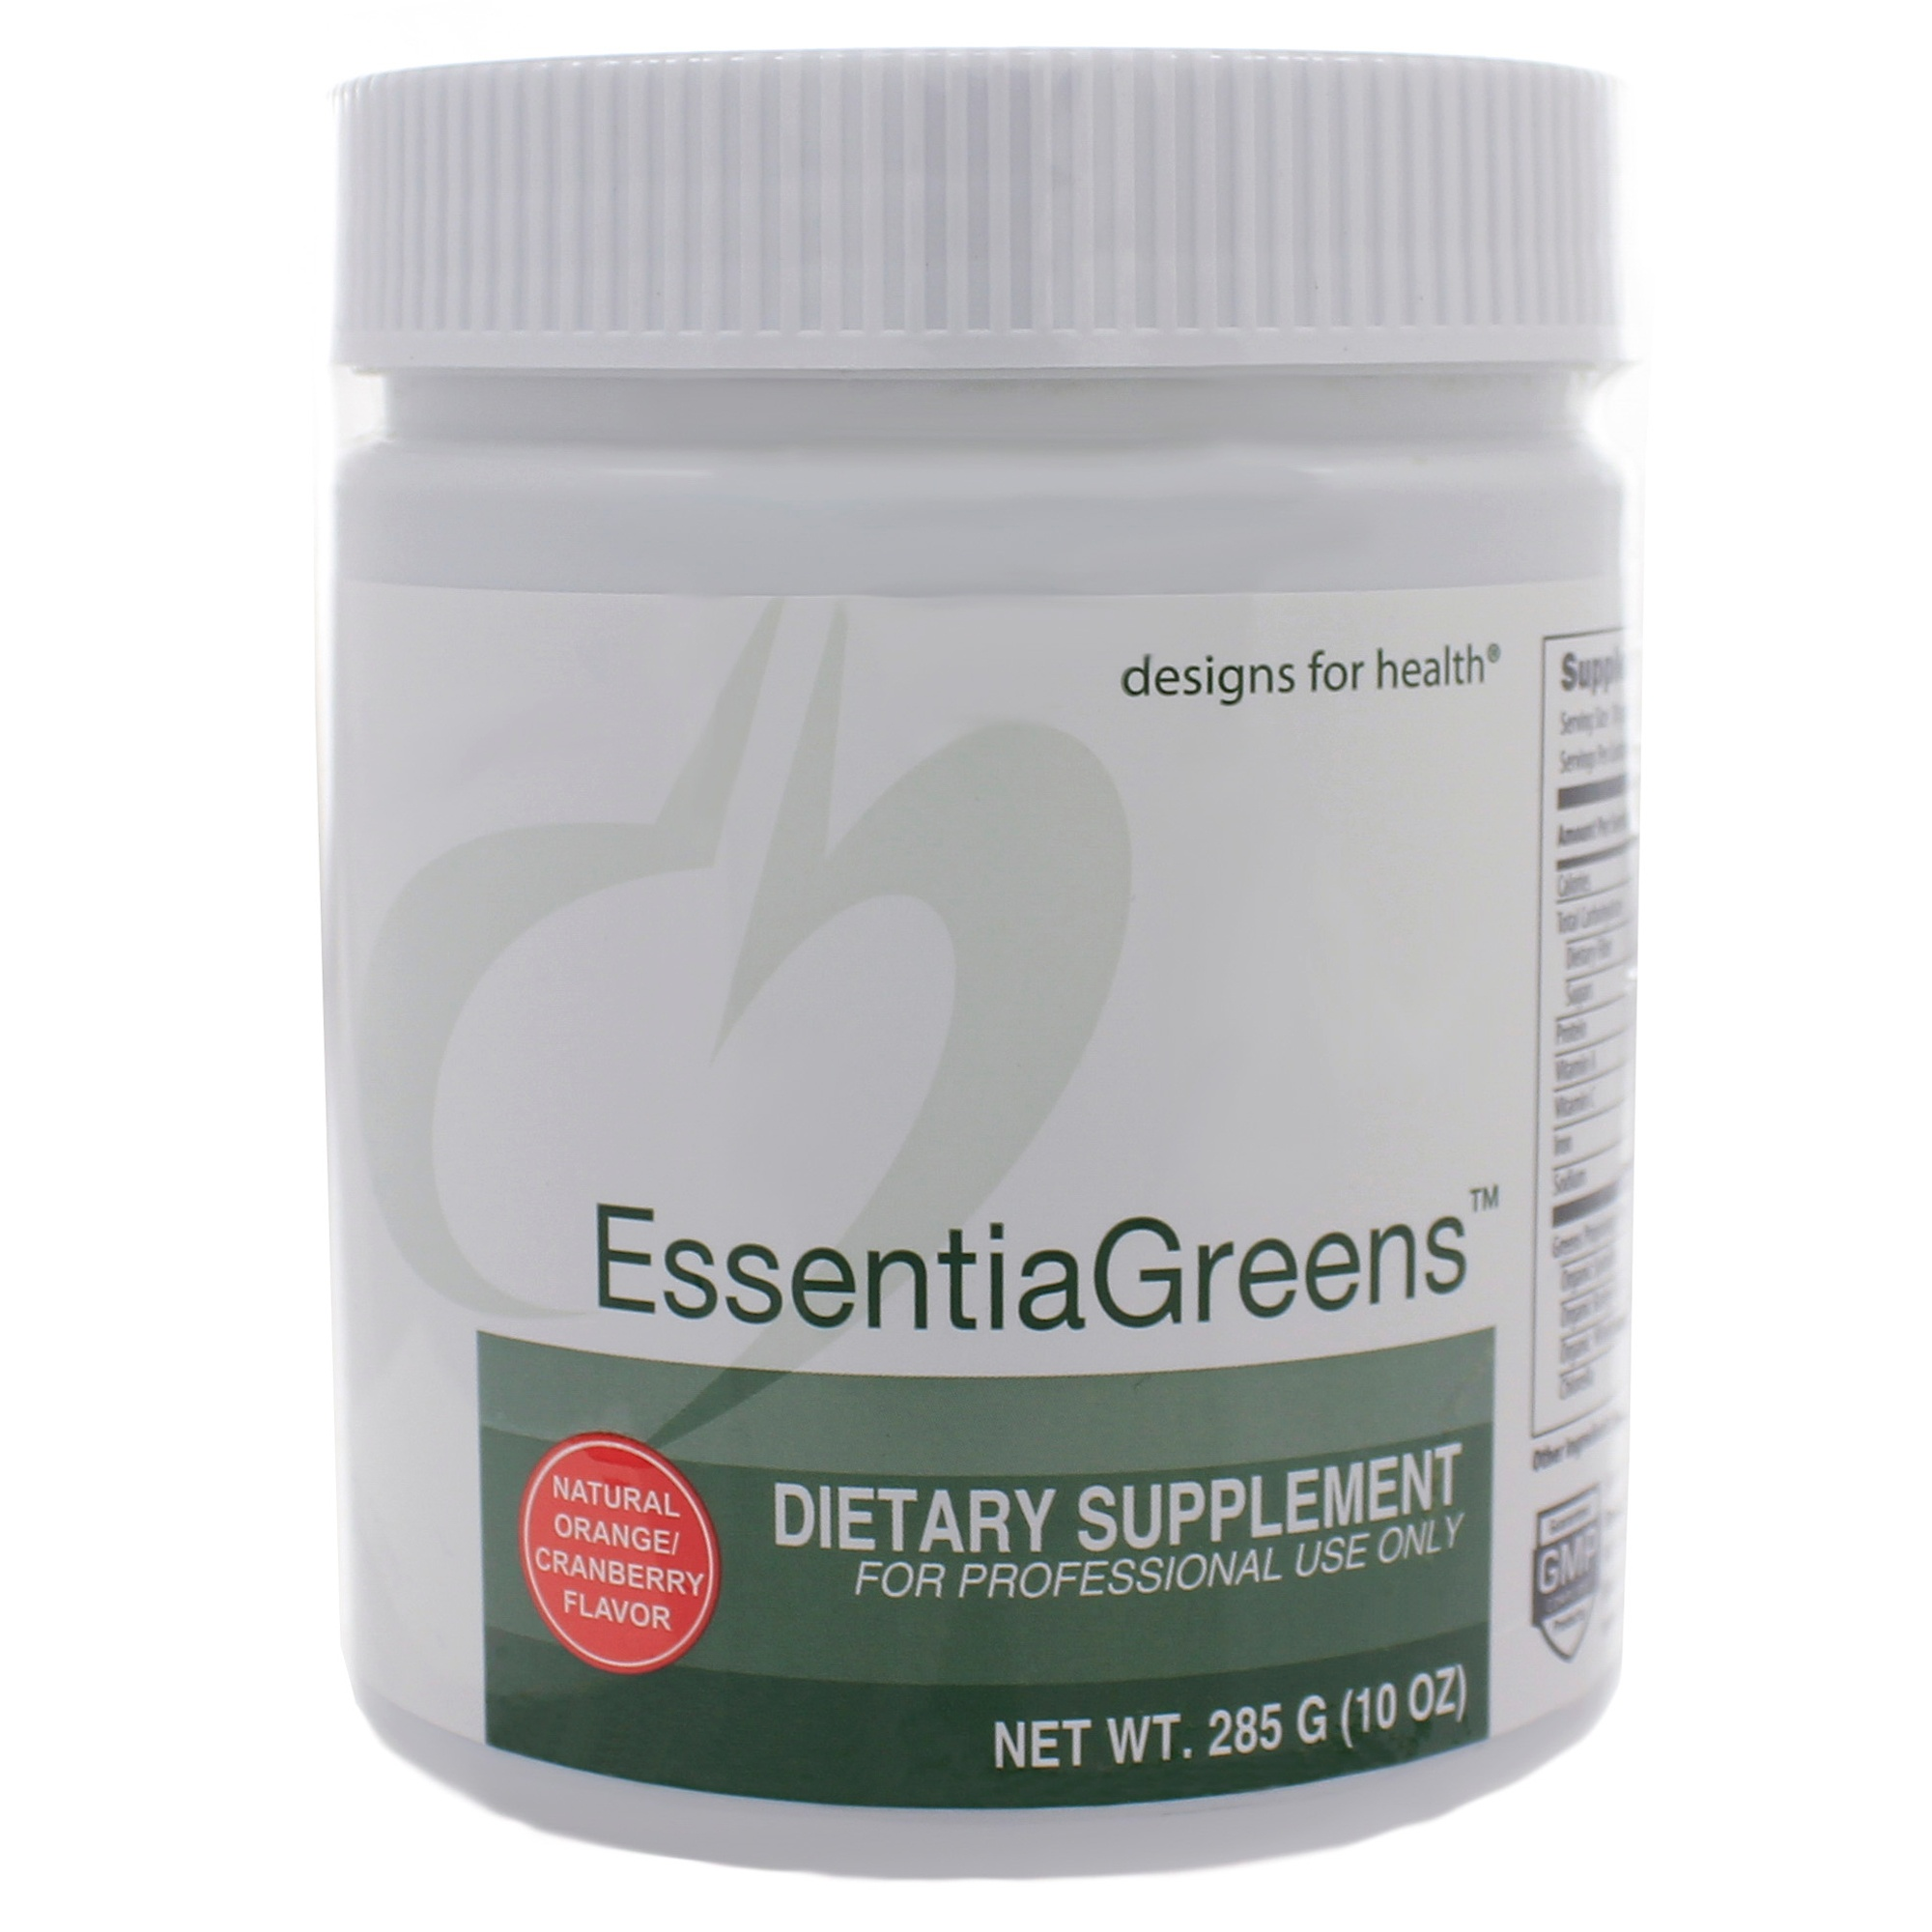 EssentiaGreens by designs for Health cheaper than Deeper Greens from Ortho Molecular